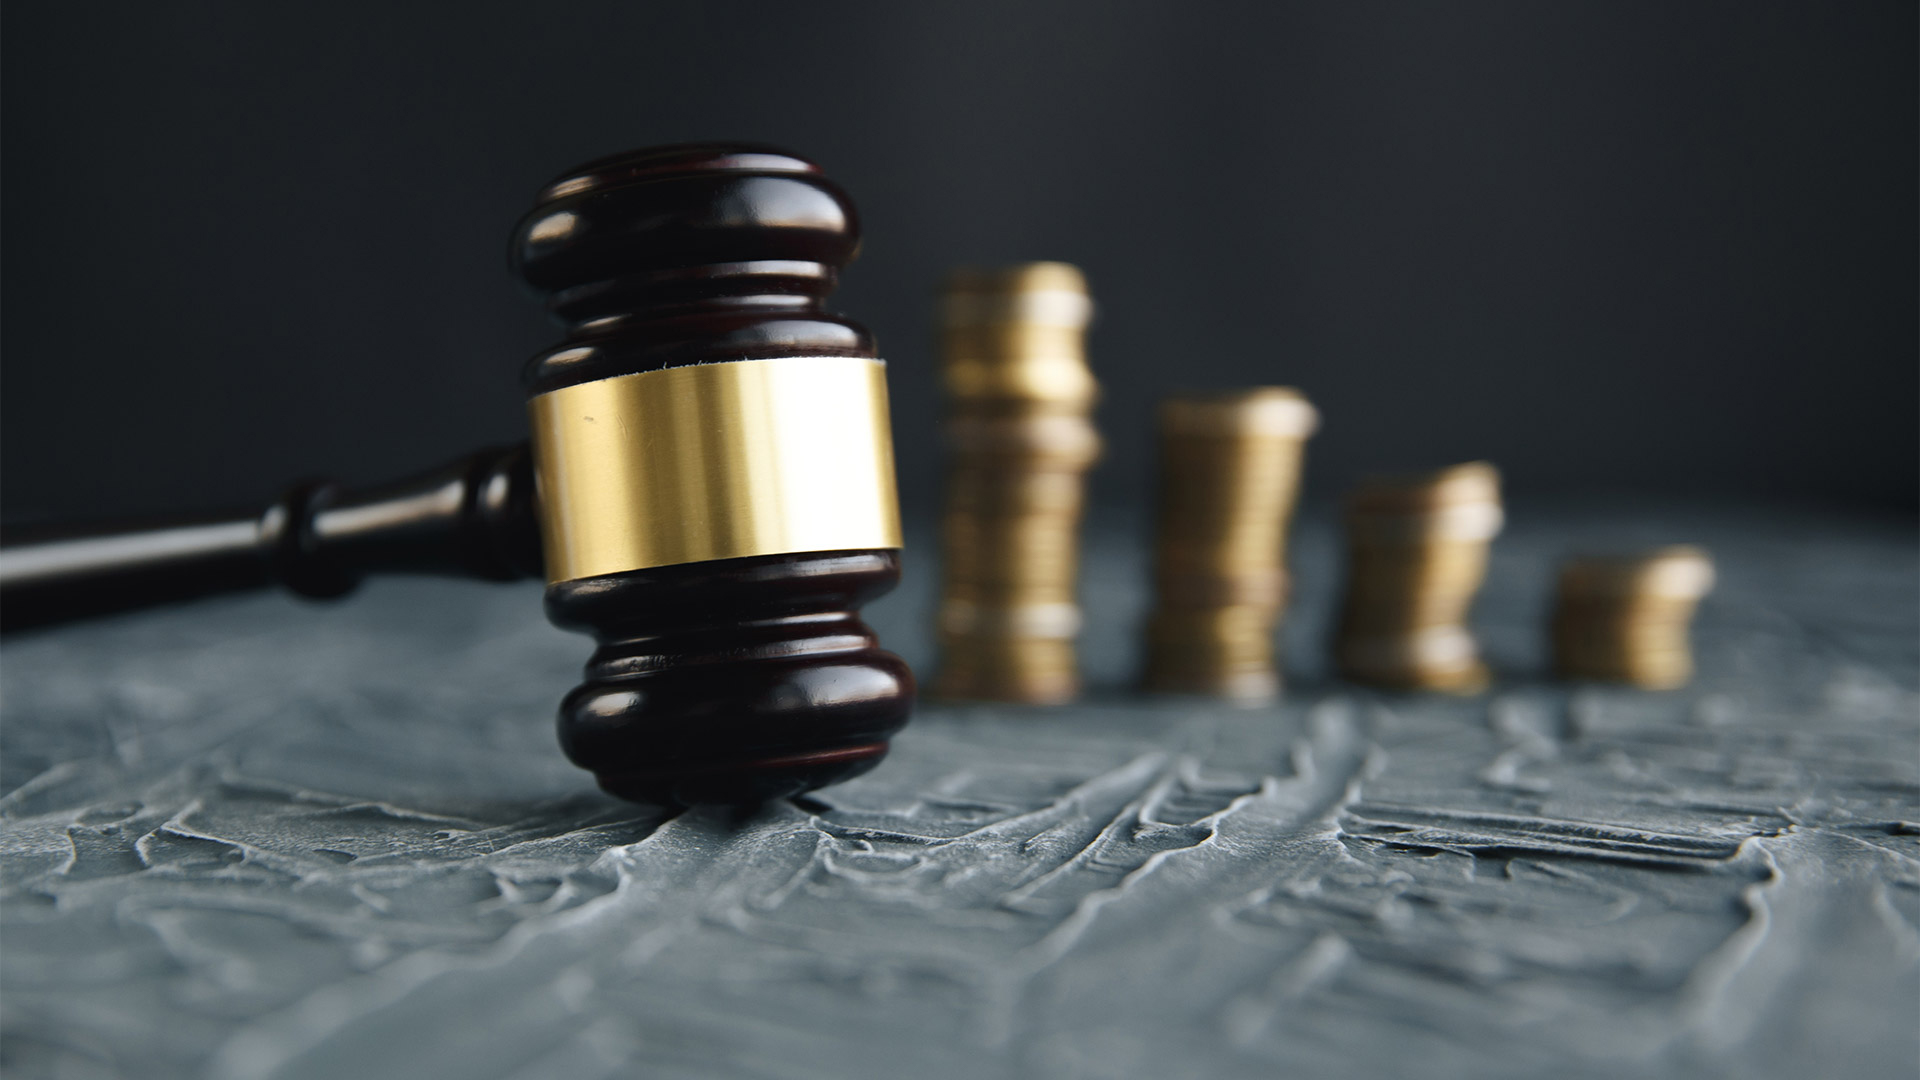 Gavel and coins